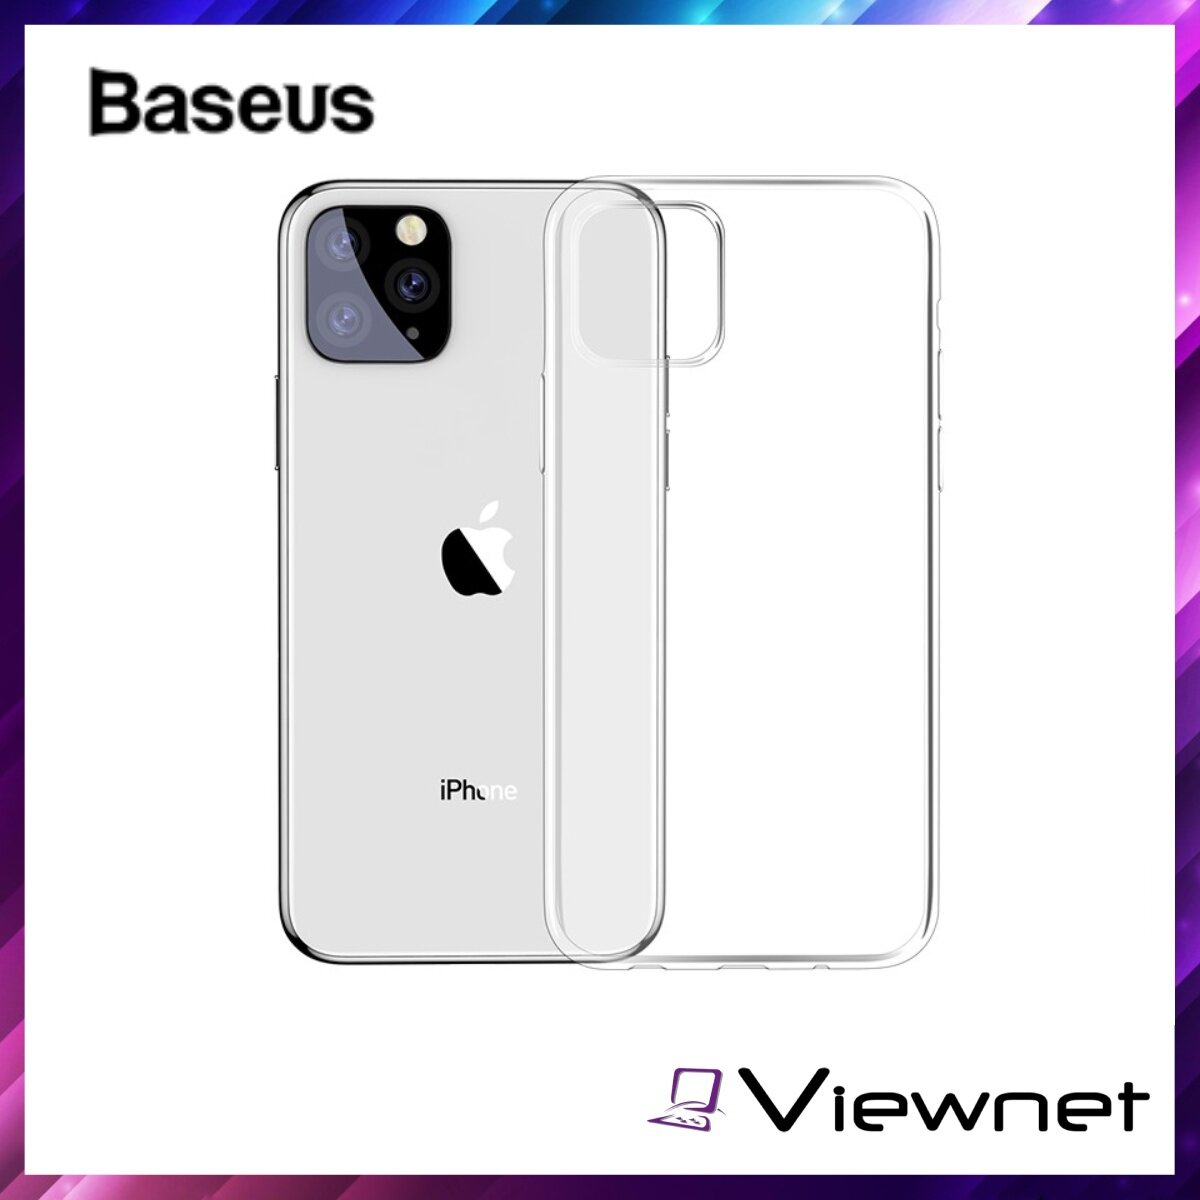 Baseus Simplicity Series Case For iPhone 11 Pro Max 6.5inch, Clear Germany Bayer TPU, Glossy, Anti-yellowing, Anti-dust, Dirt-proof, Transparent / Transparent Black / Transparent Gold